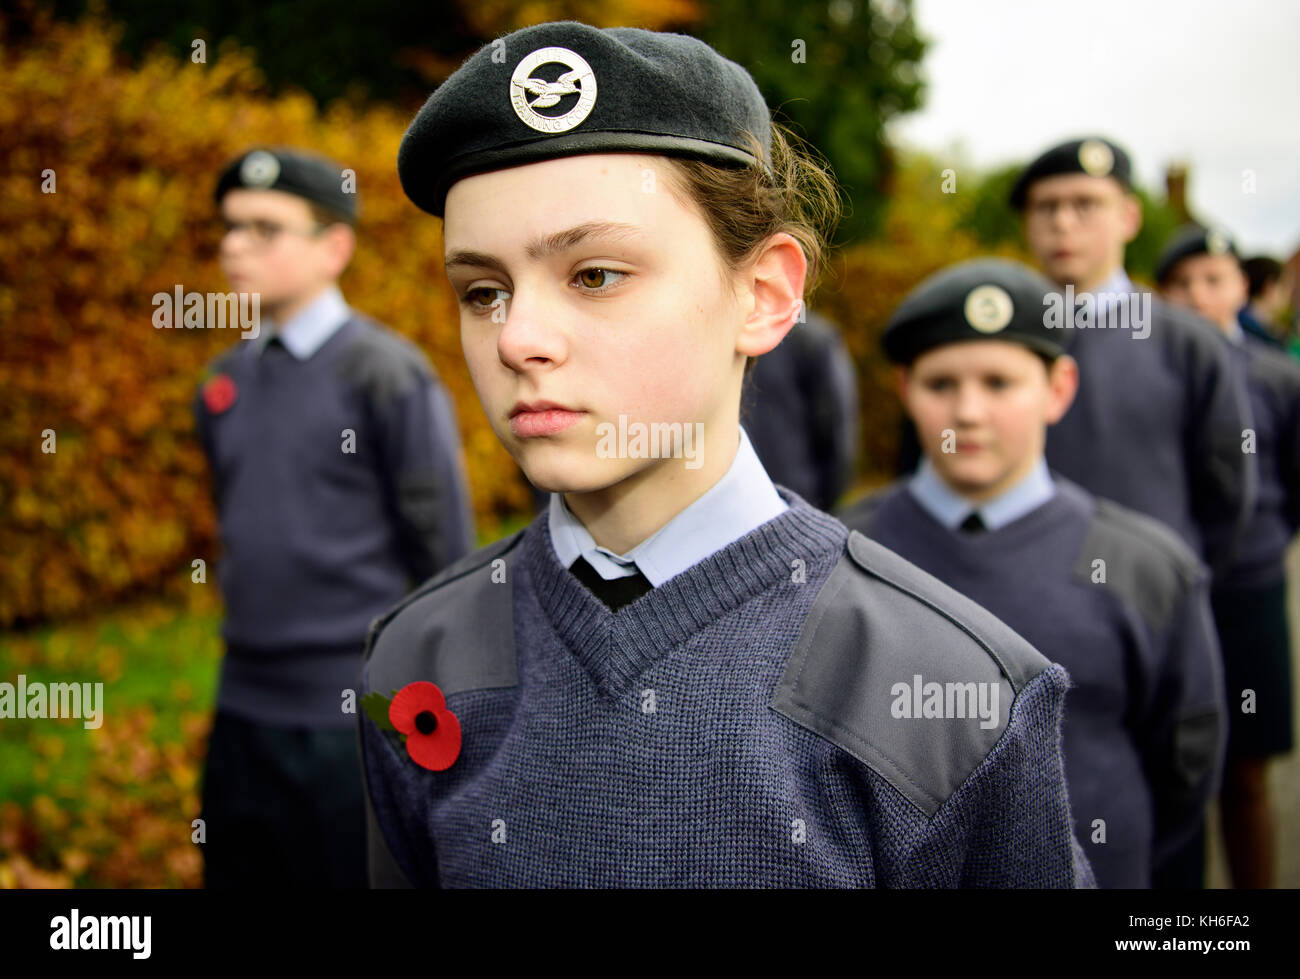 Haslemere Air Training Corps on parade during Remembrance Sunday, Haslemere, Surrey, UK. Sunday 12th November 2017. - Stock Image